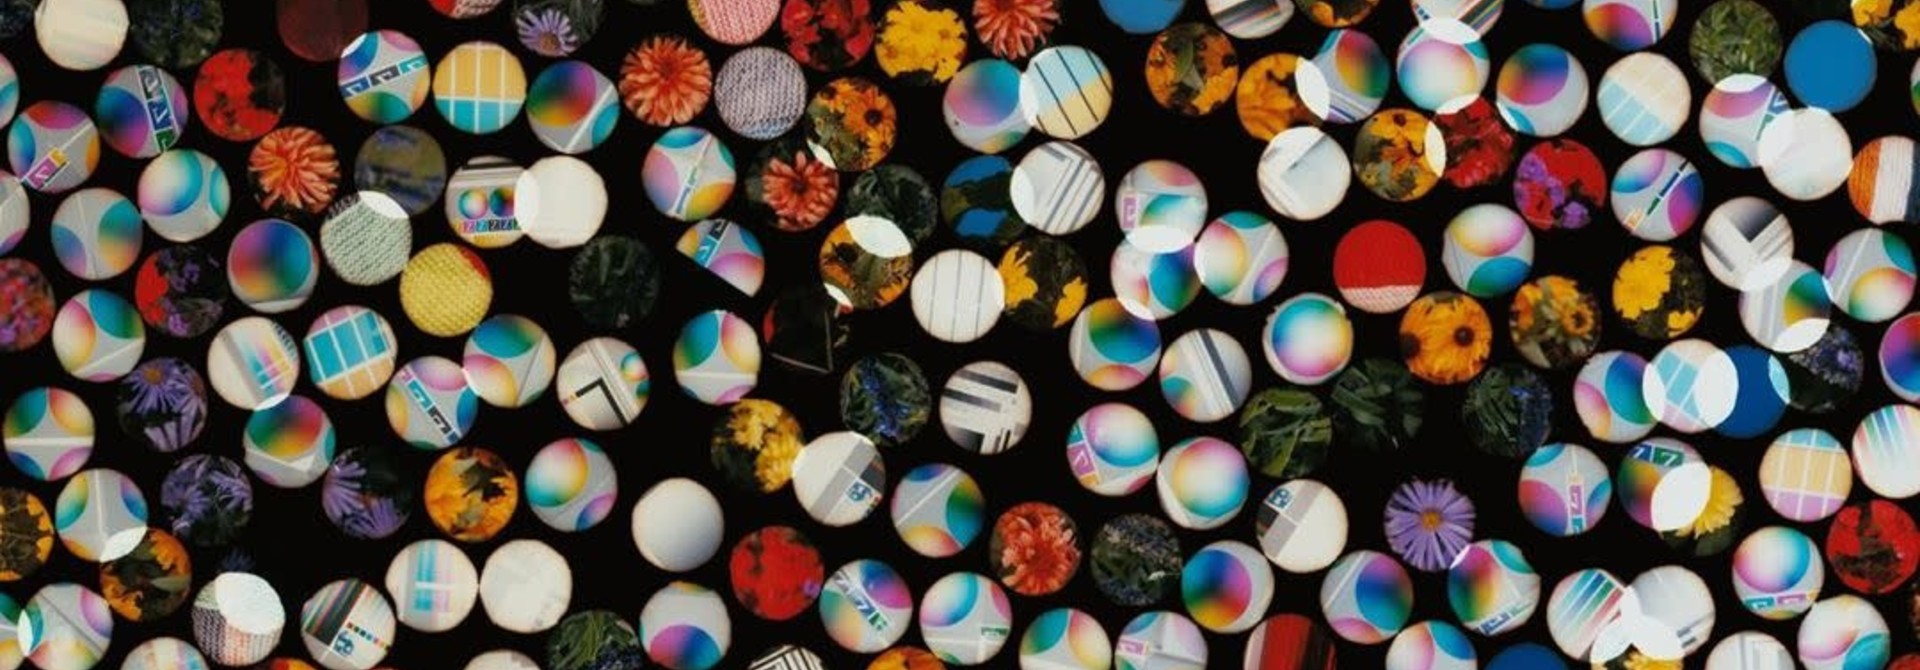 Four Tet • There Is Love In You (Réédition deluxe 3xLP)